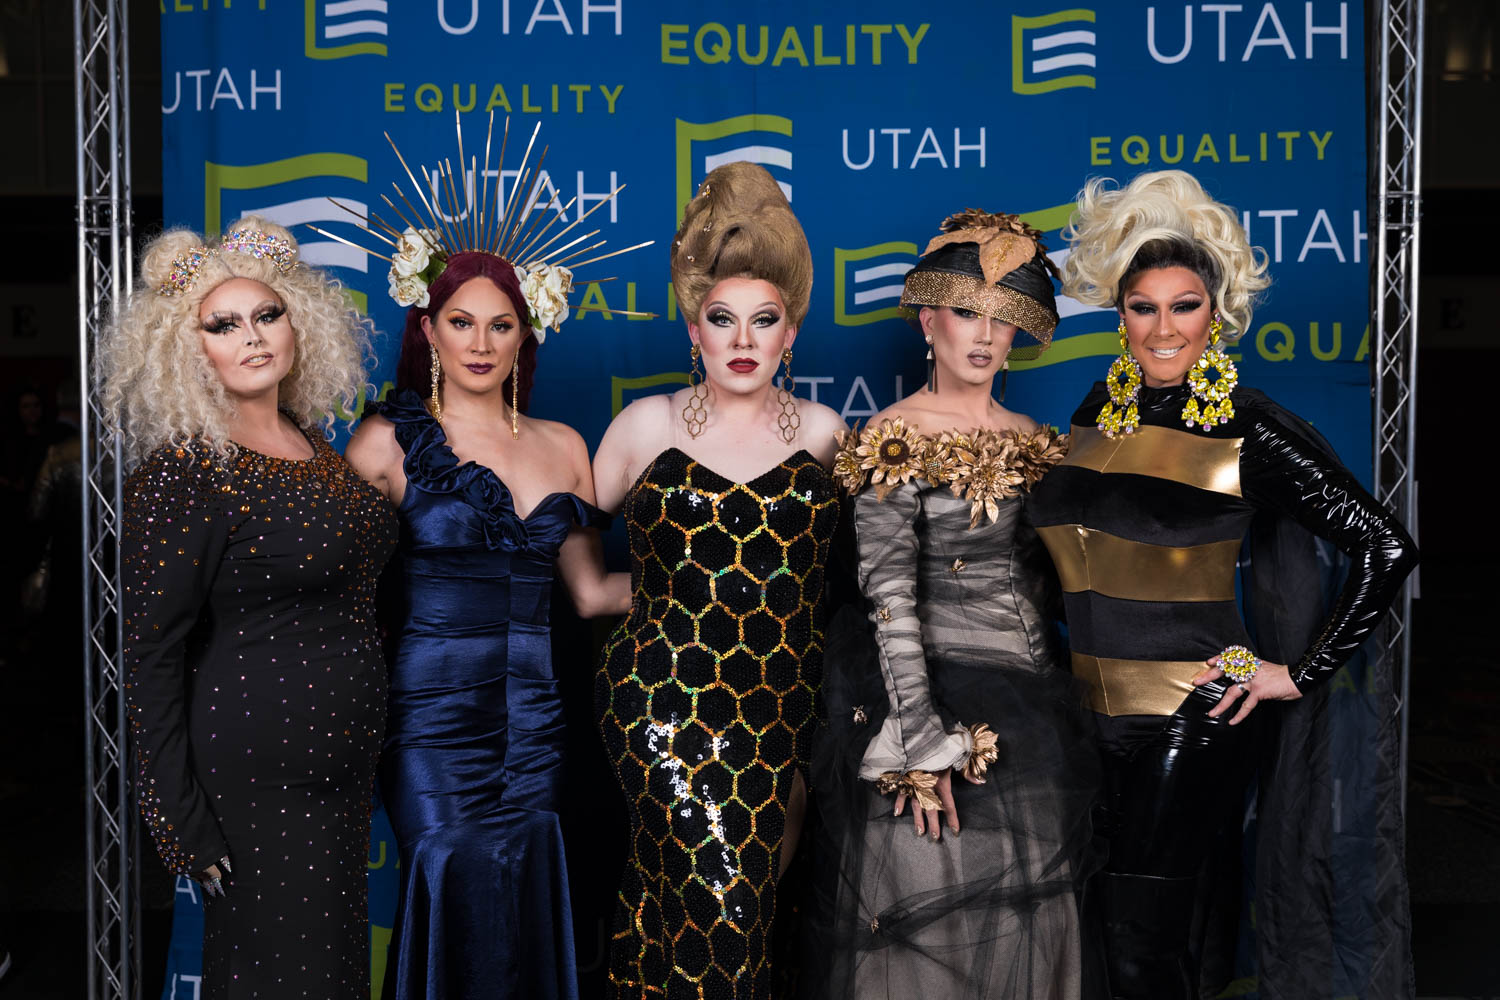 A gaggle of drag